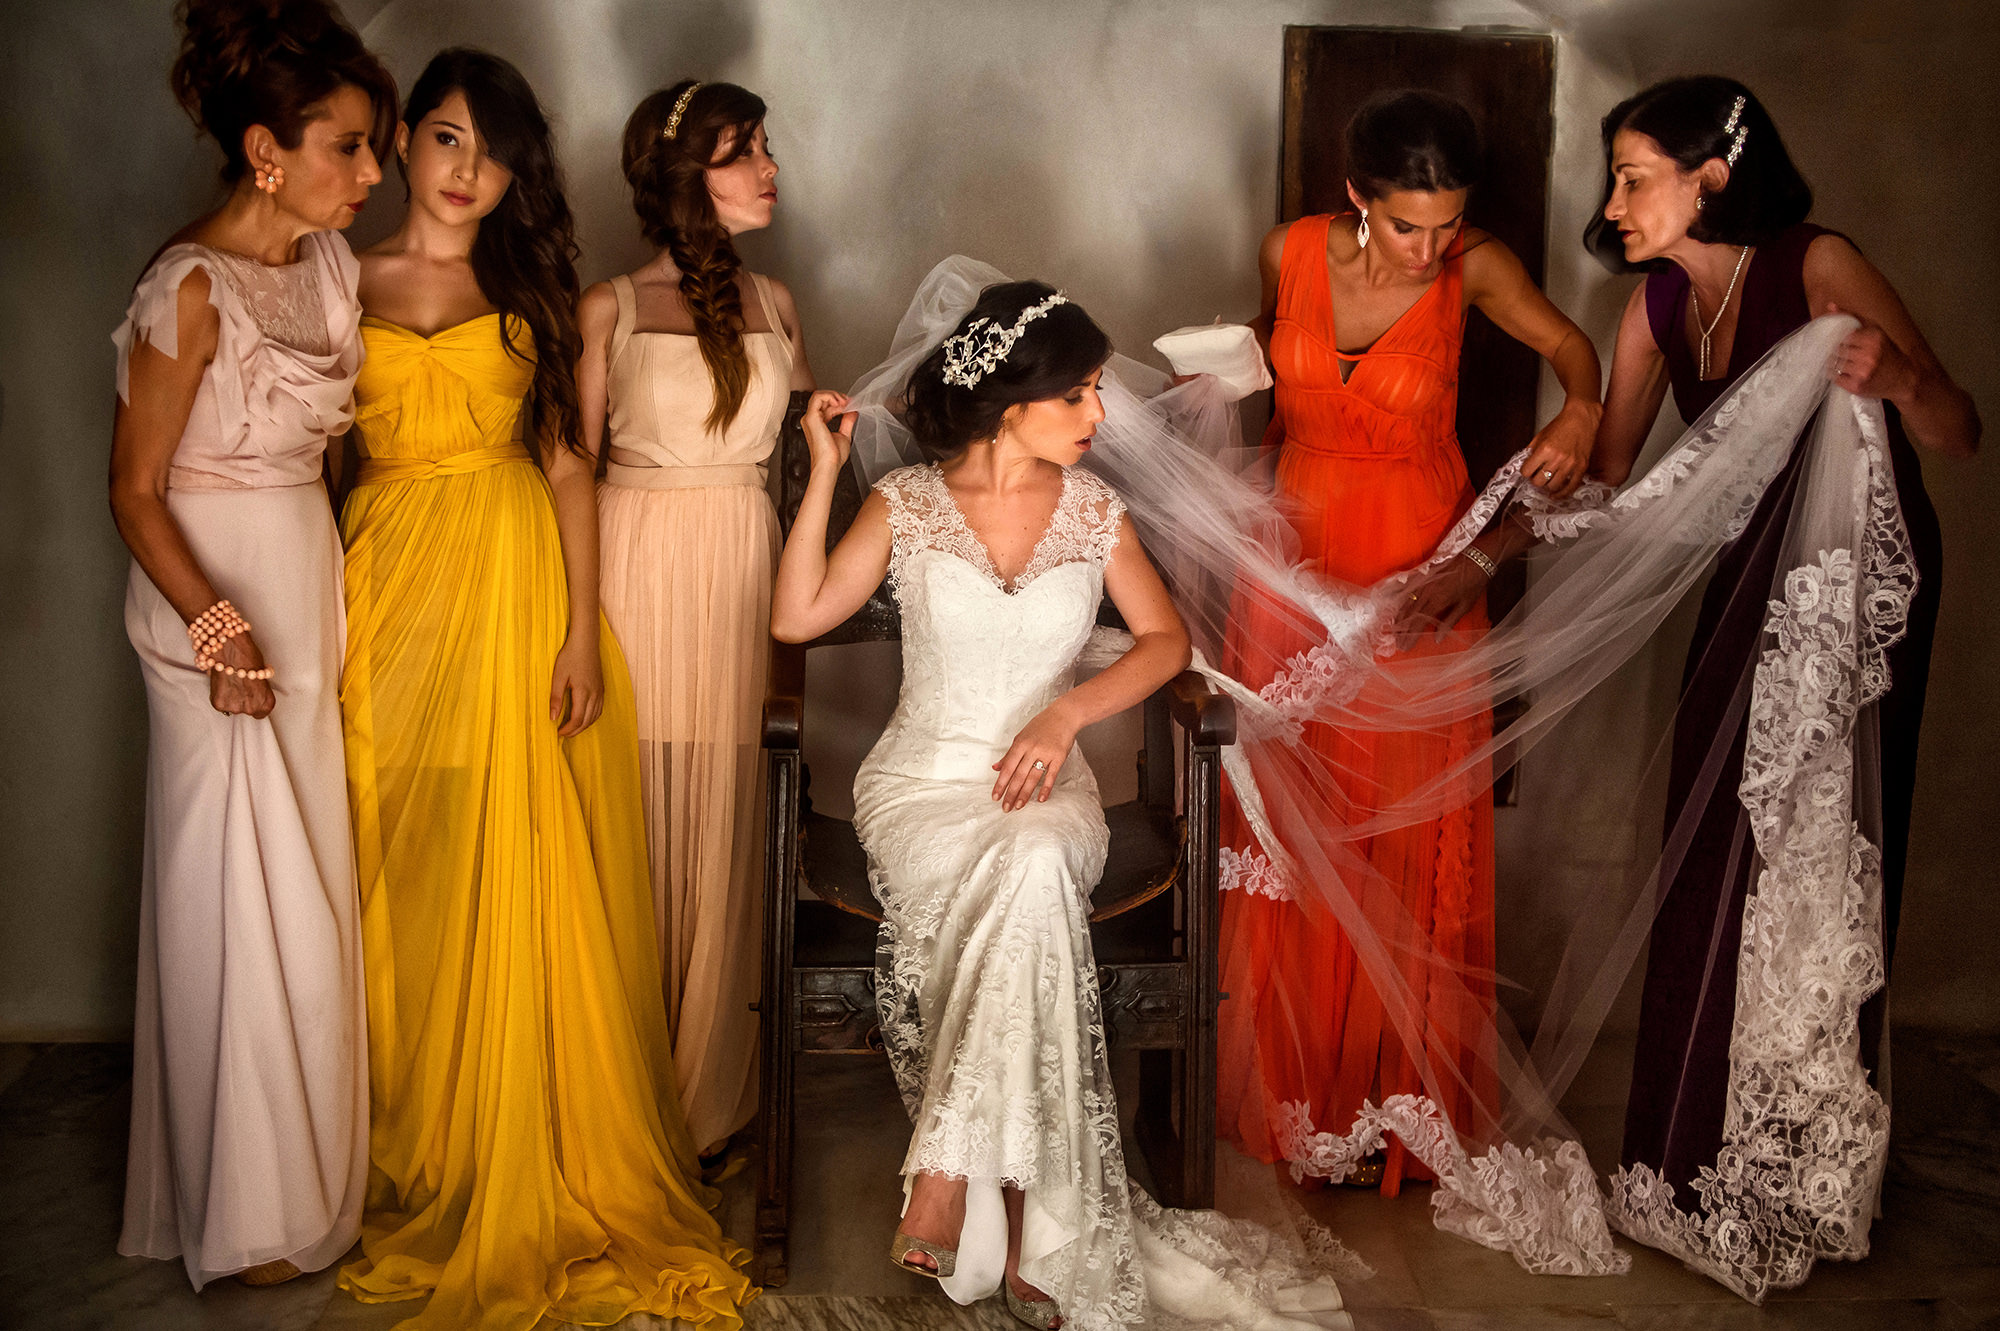 Bridesmaid fixing bride's long lac veil - photo by Davina + Daniel